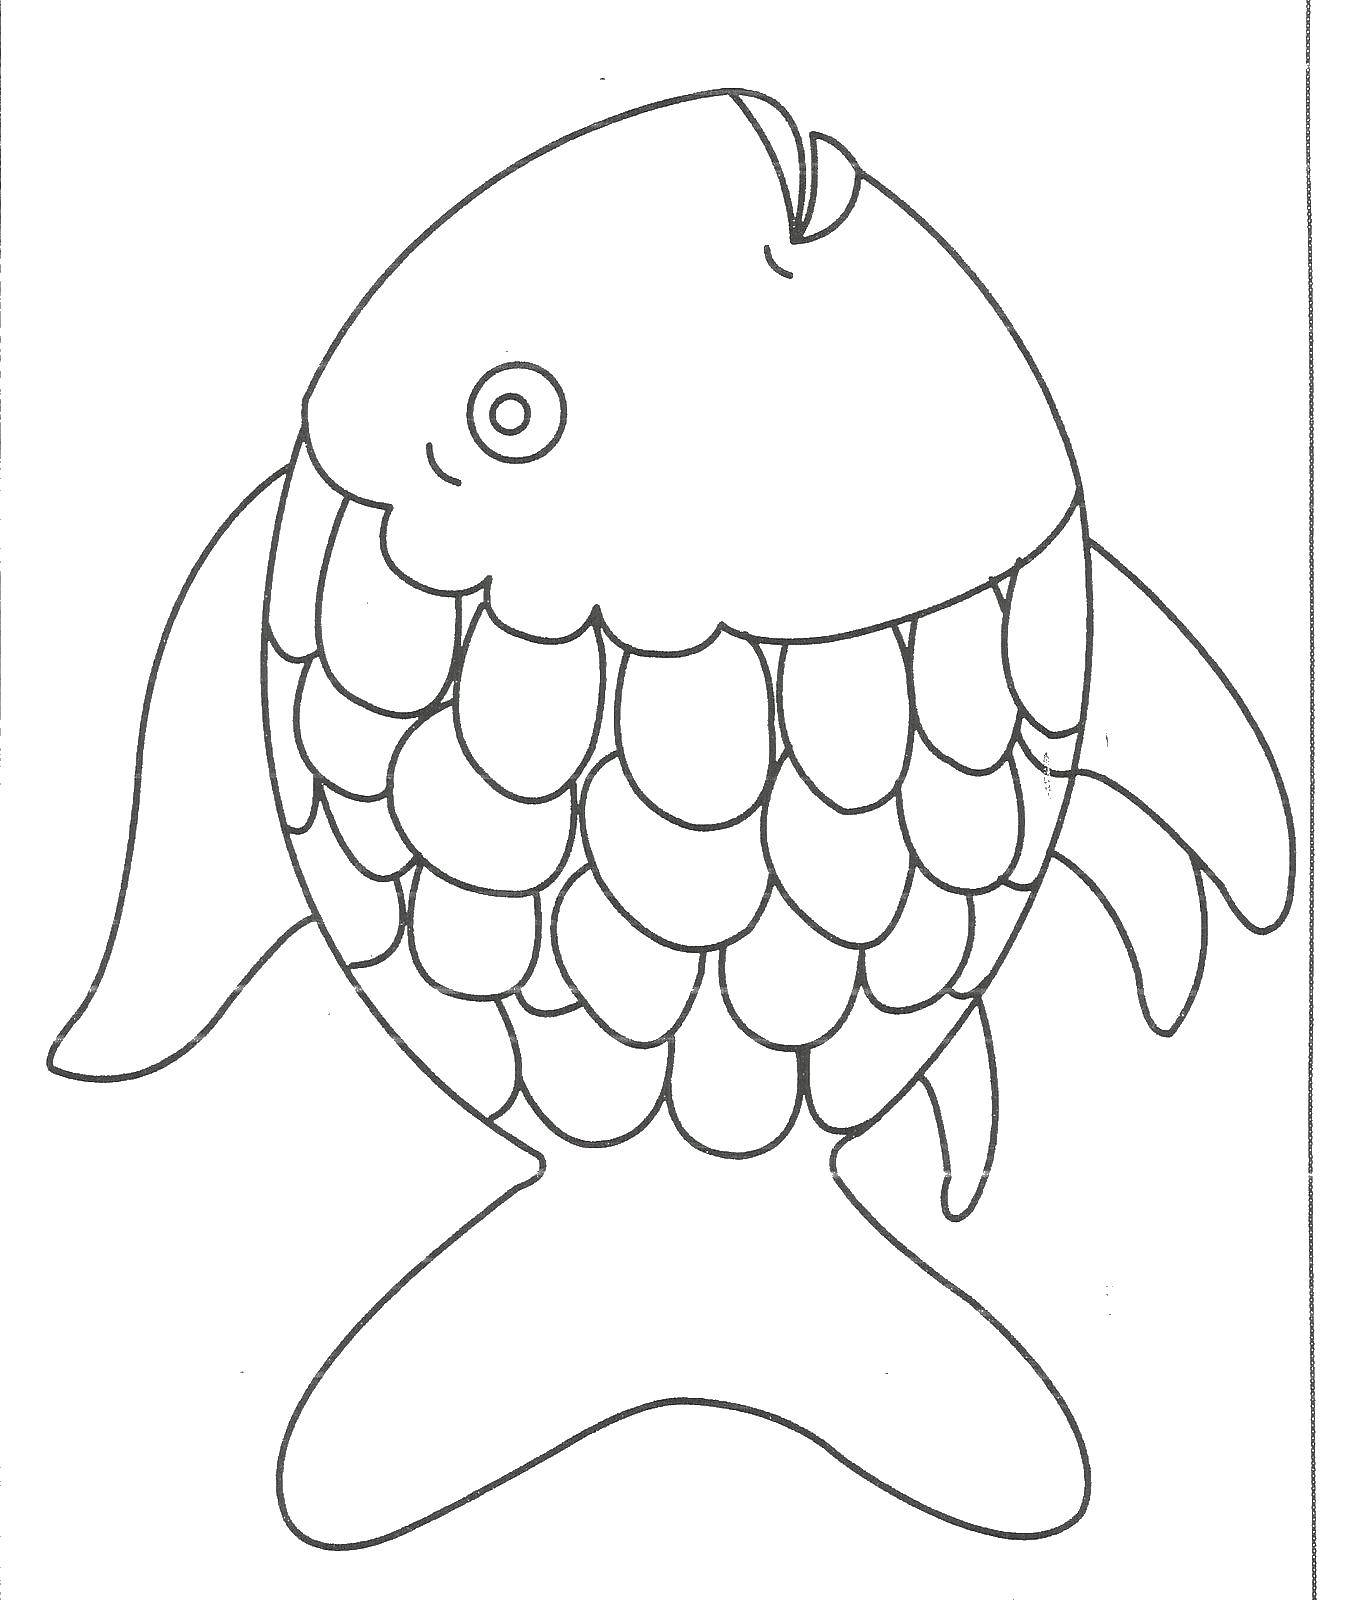 Kissing Fish Coloring Pages For Kids - Download & Print Online ... | 1600x1356